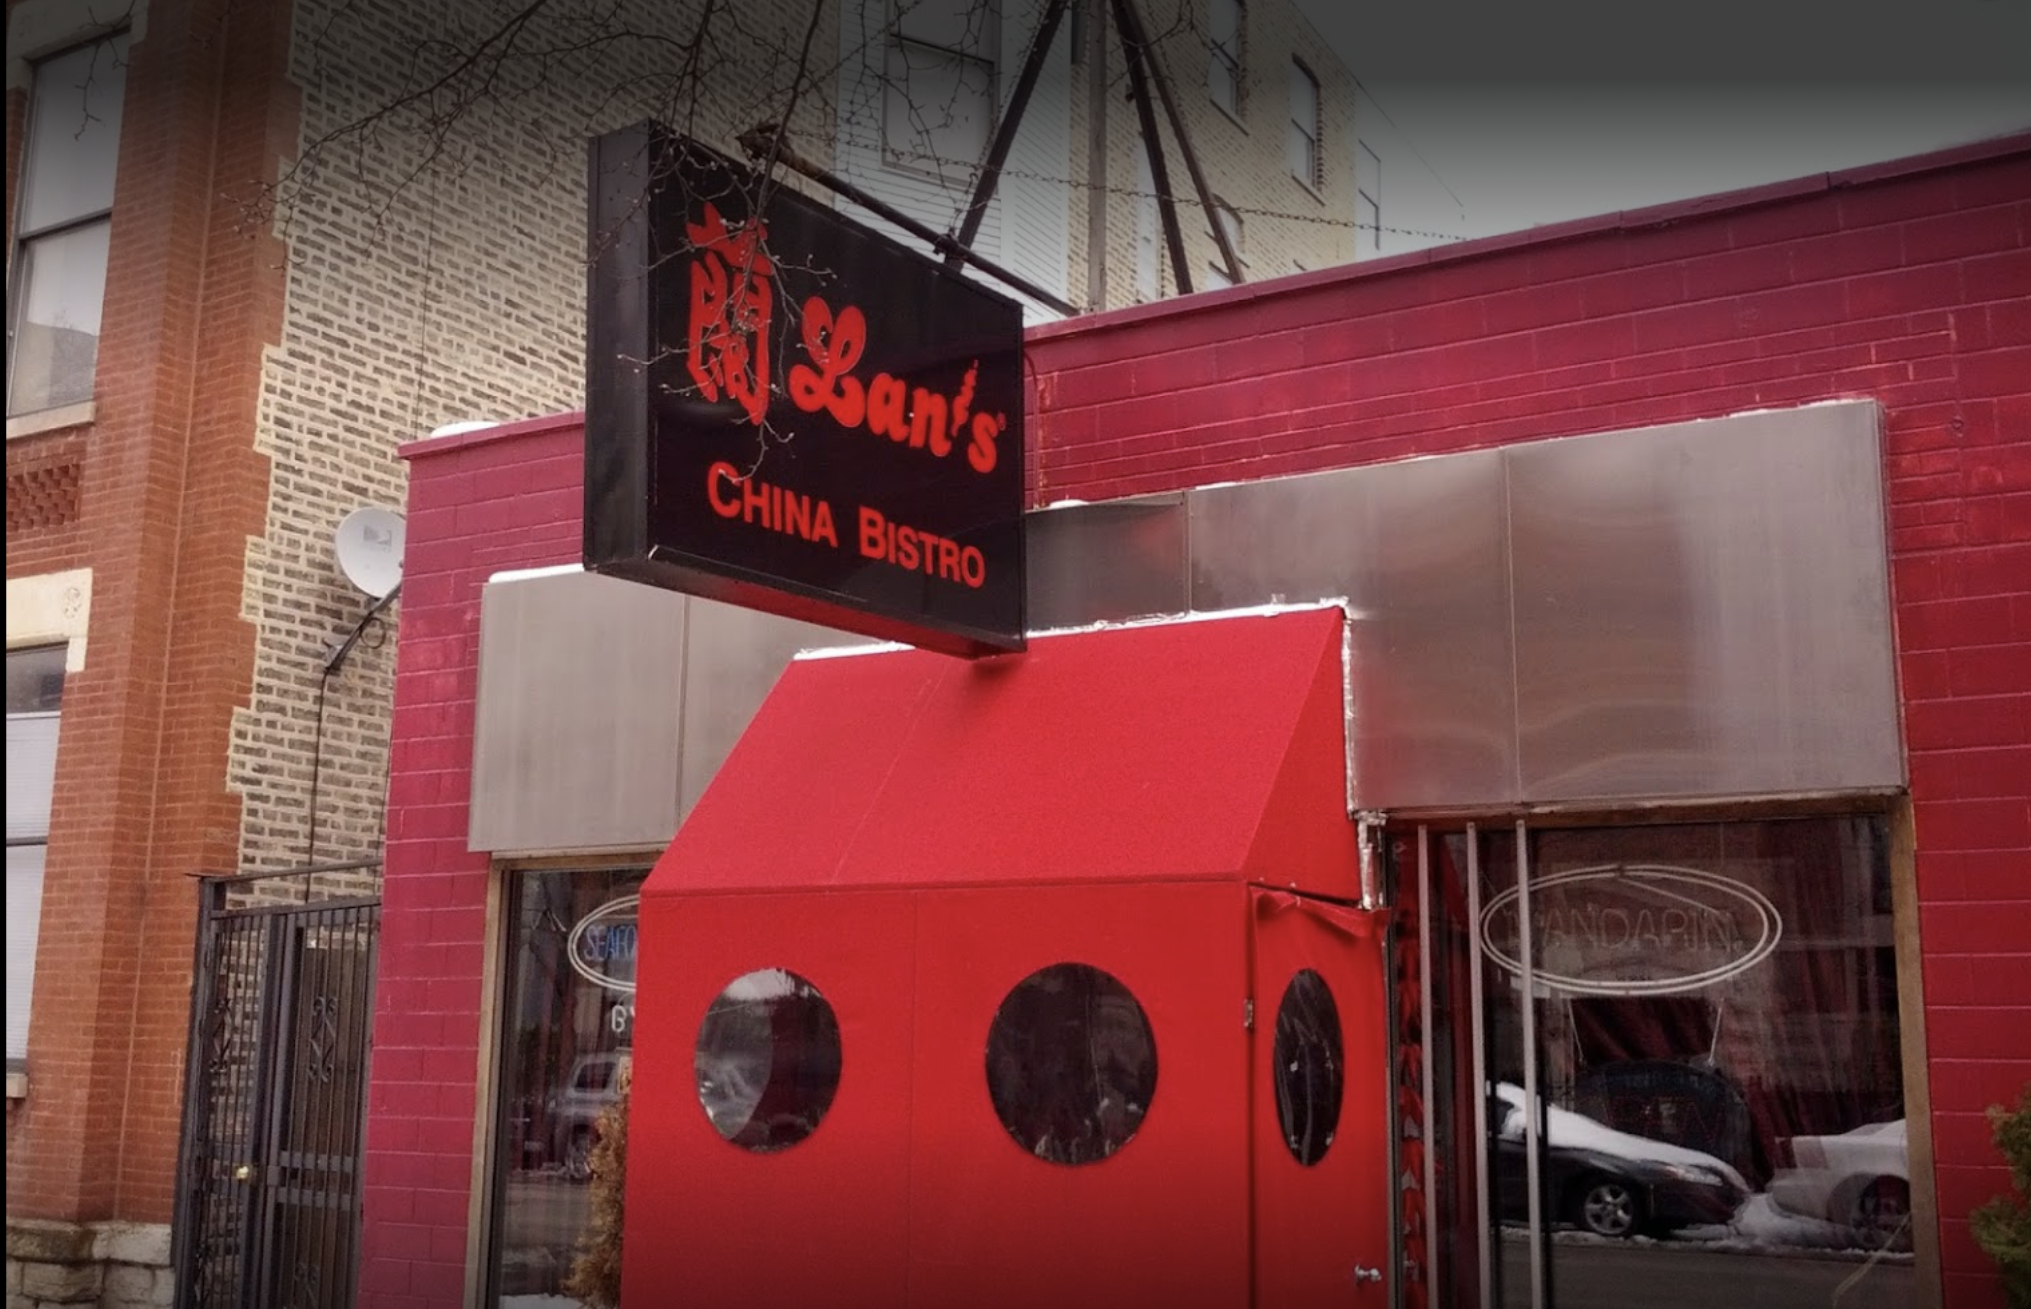 Snows on the ground outside a restaurant storefront with a sign and a red vestibule.